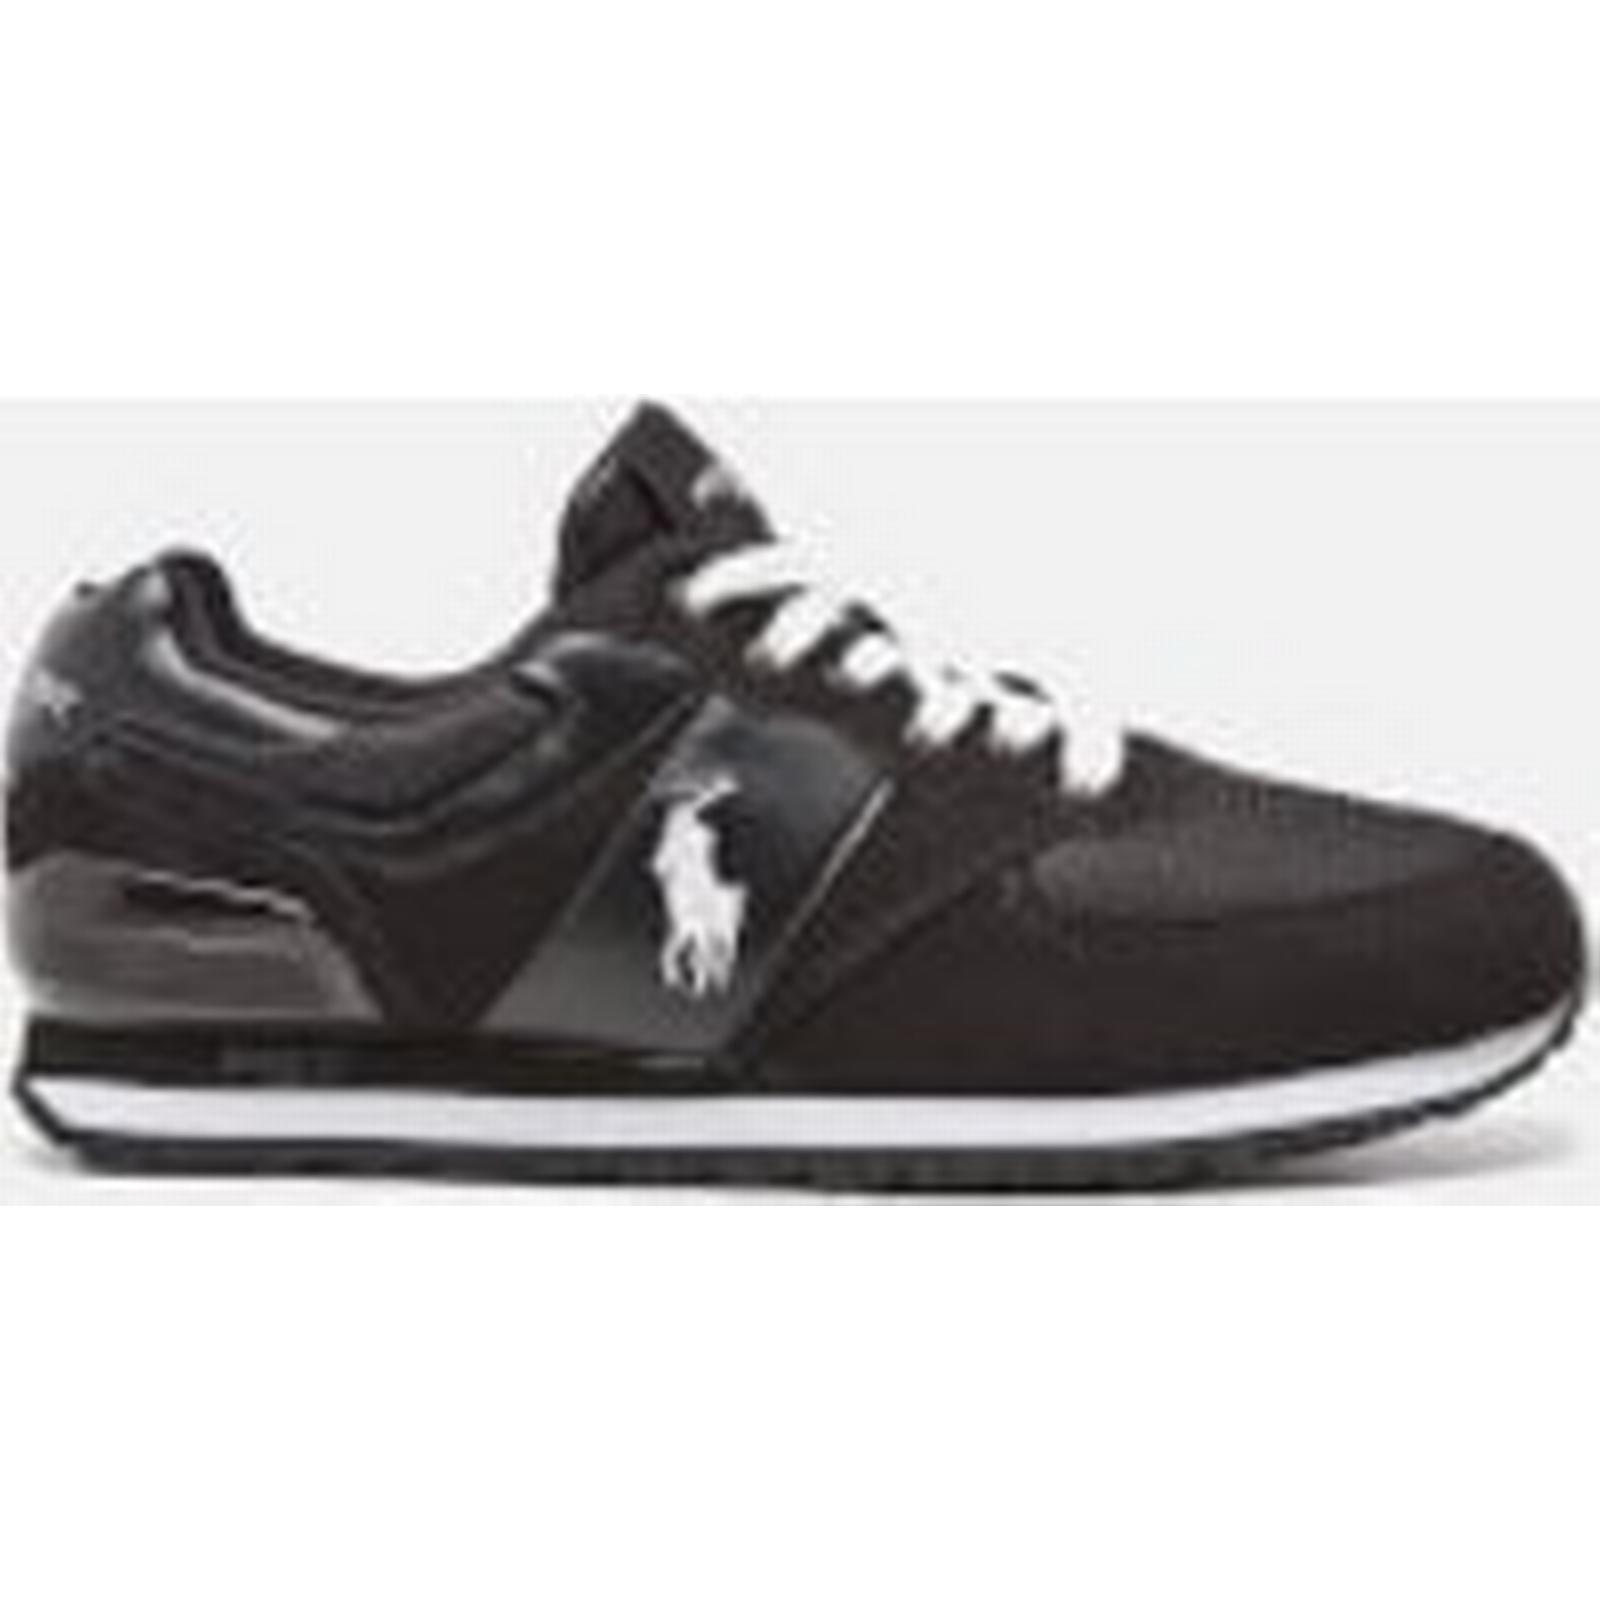 Polo Pony Ralph Lauren Men's Slaton Pony Polo Runner Trainers - Black/White - UK 9 - Black c16595